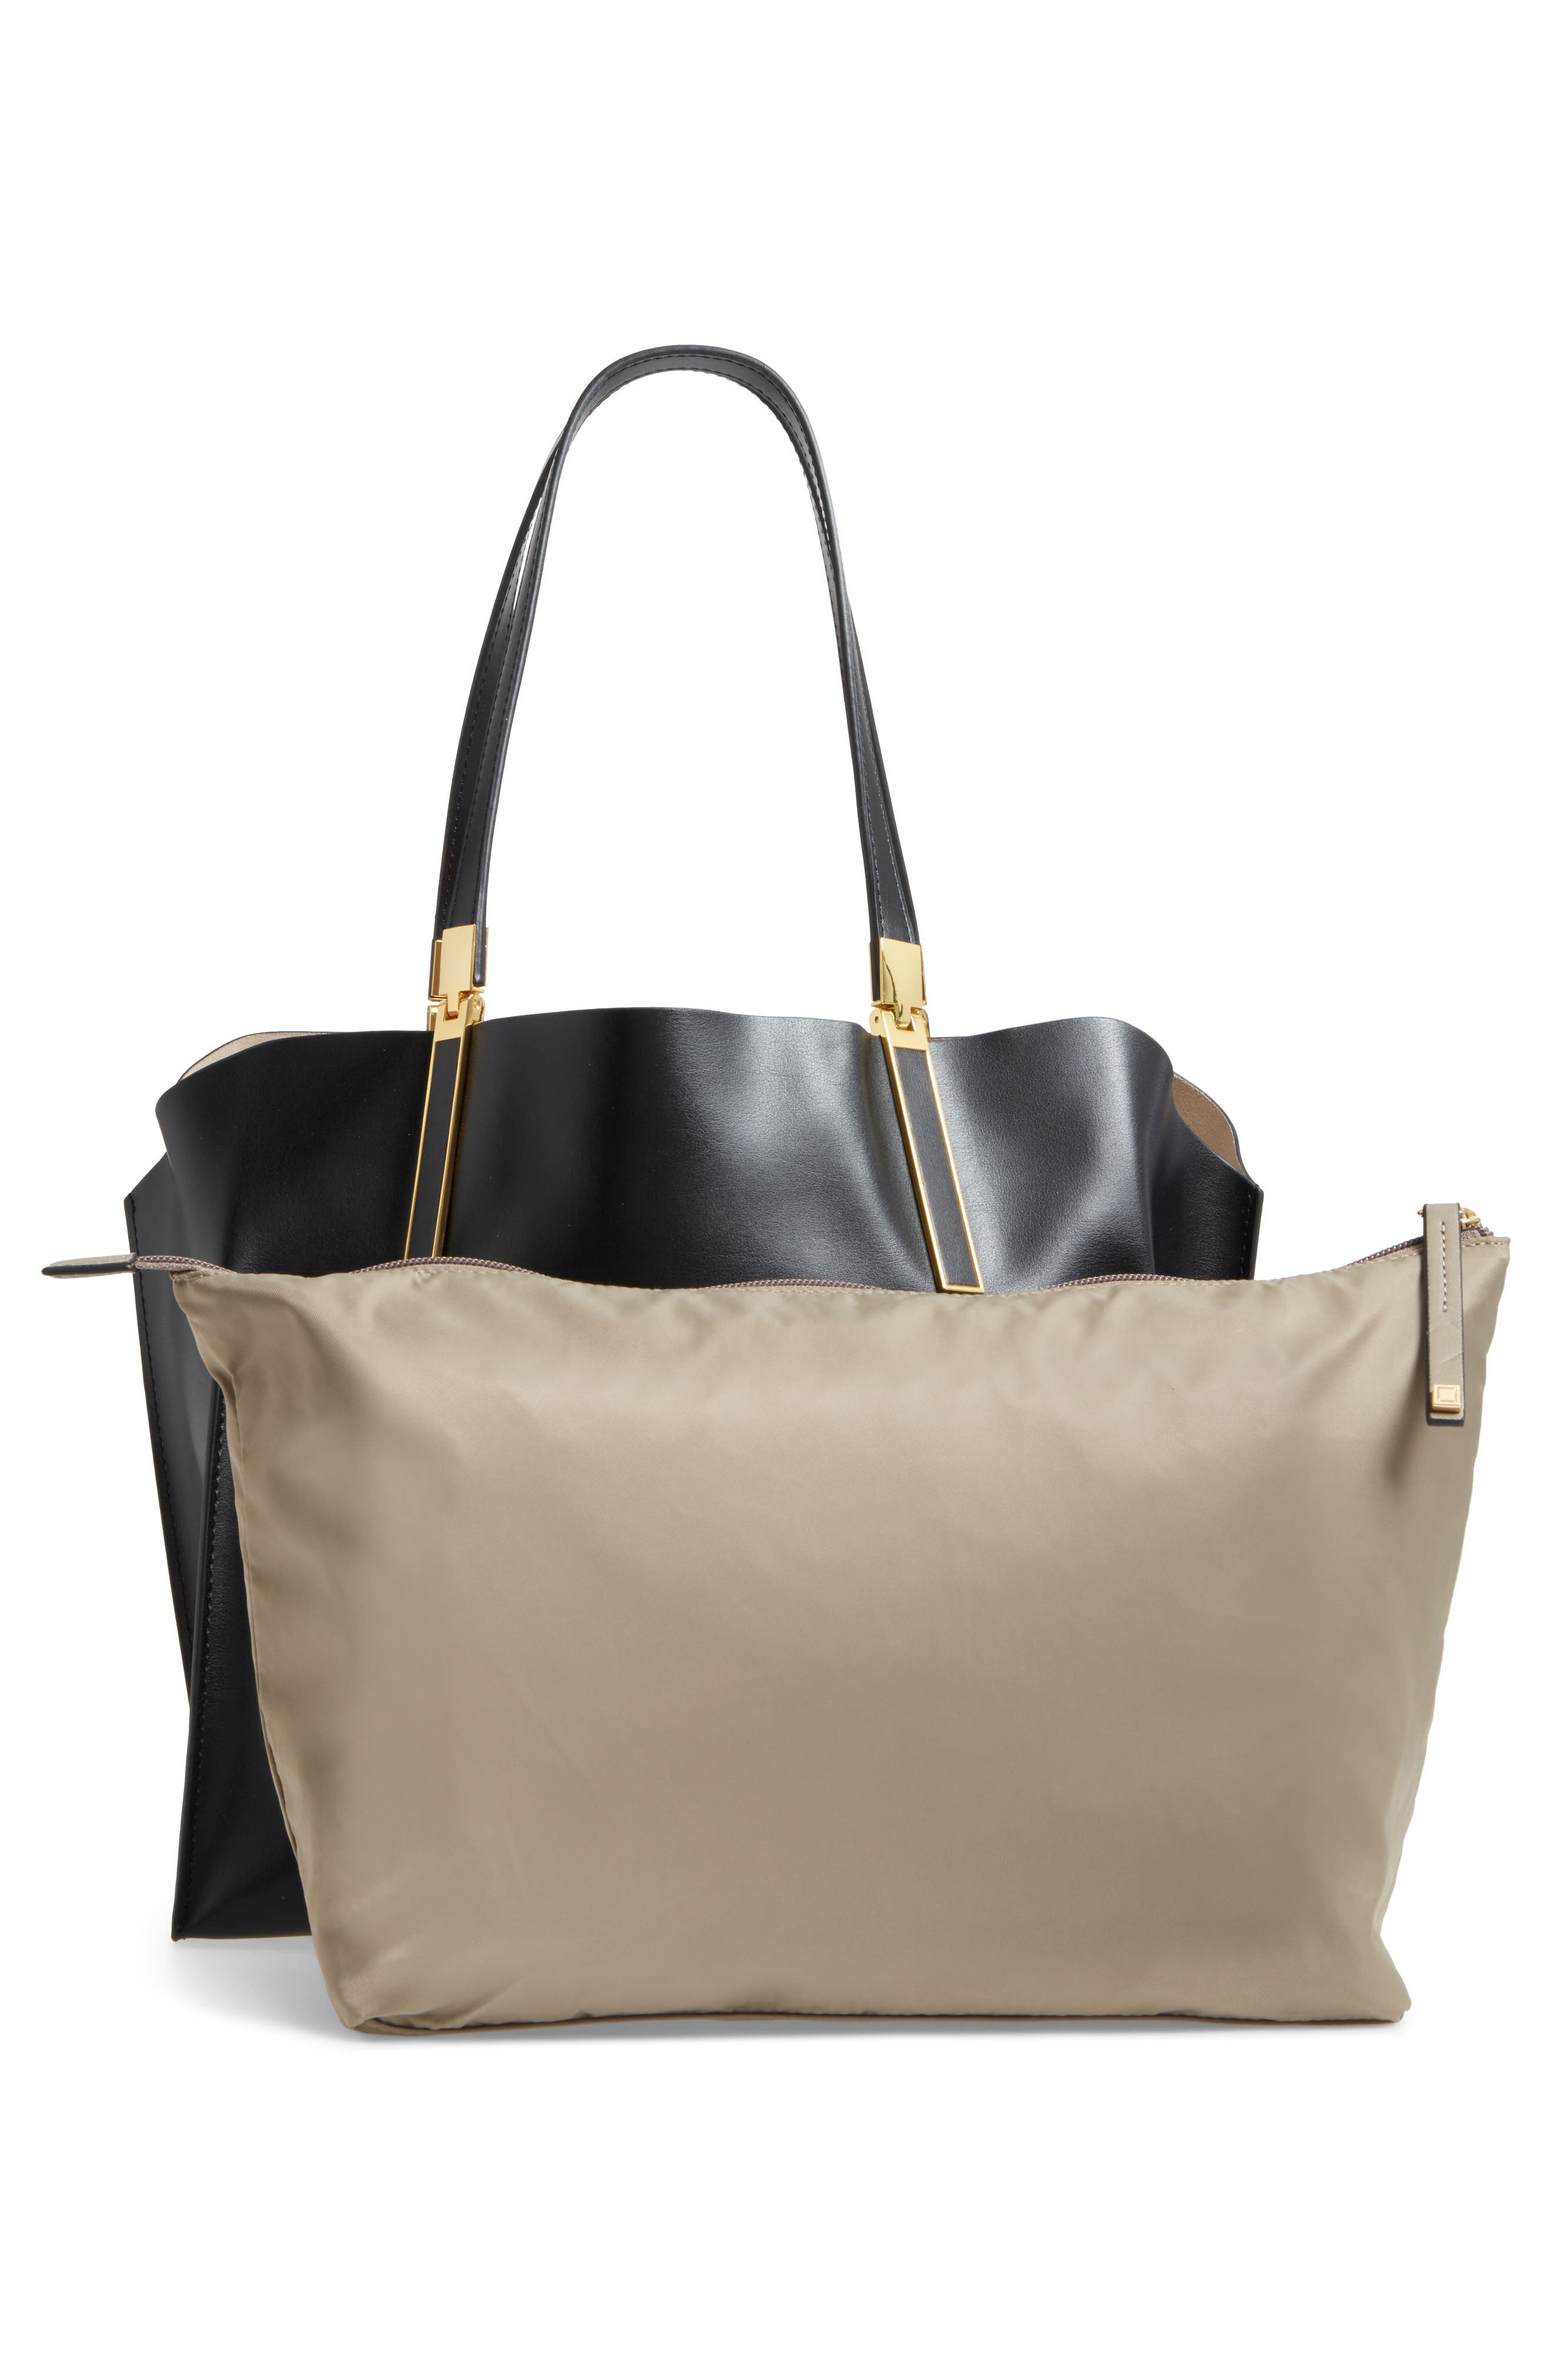 LODIS Silicon Valley Collection Under Lock & Key - Anita RFID East/West Leather Satchel,                             Alternate thumbnail 3, color,                             001